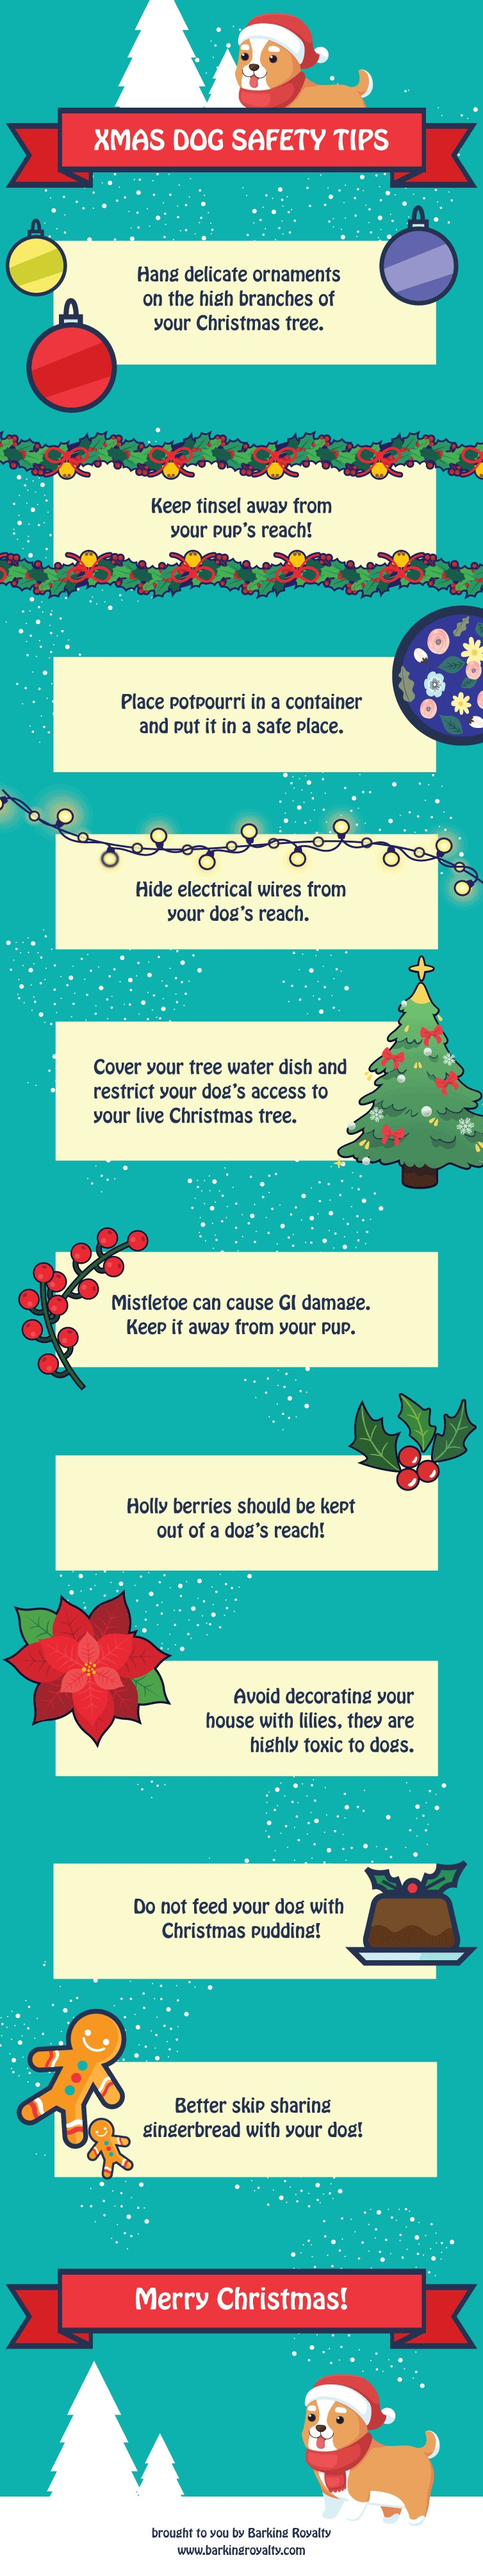 Keeping Your Dog Safe During the Holidays (Infographic)